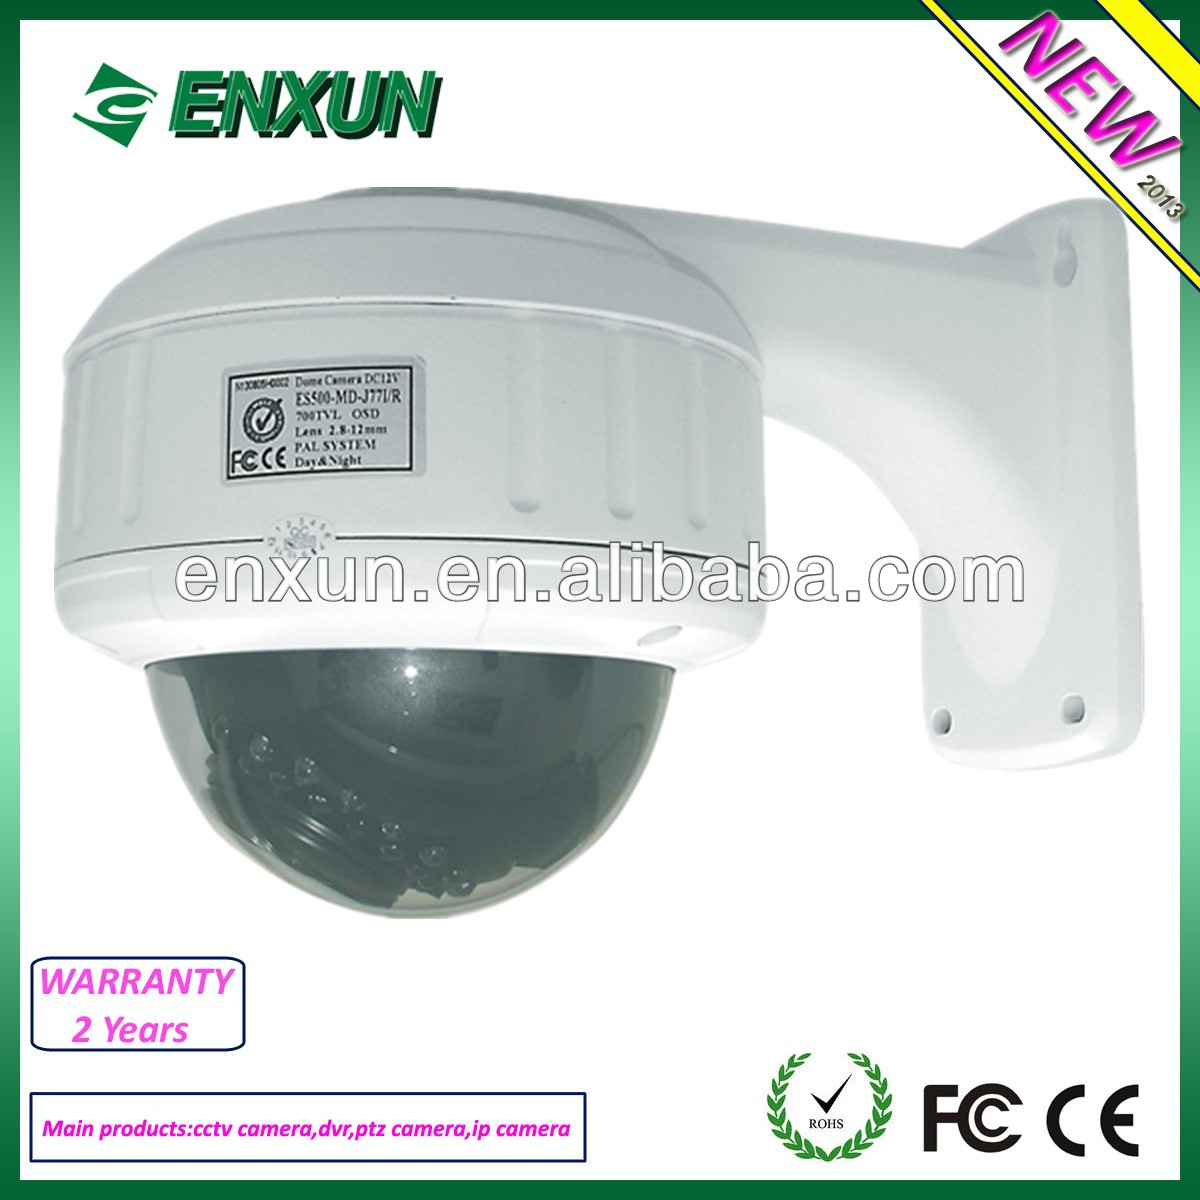 2.8-12mm Varifocal 2M Pixels Lens Vandal Proof IR dome Camera CCTV camera